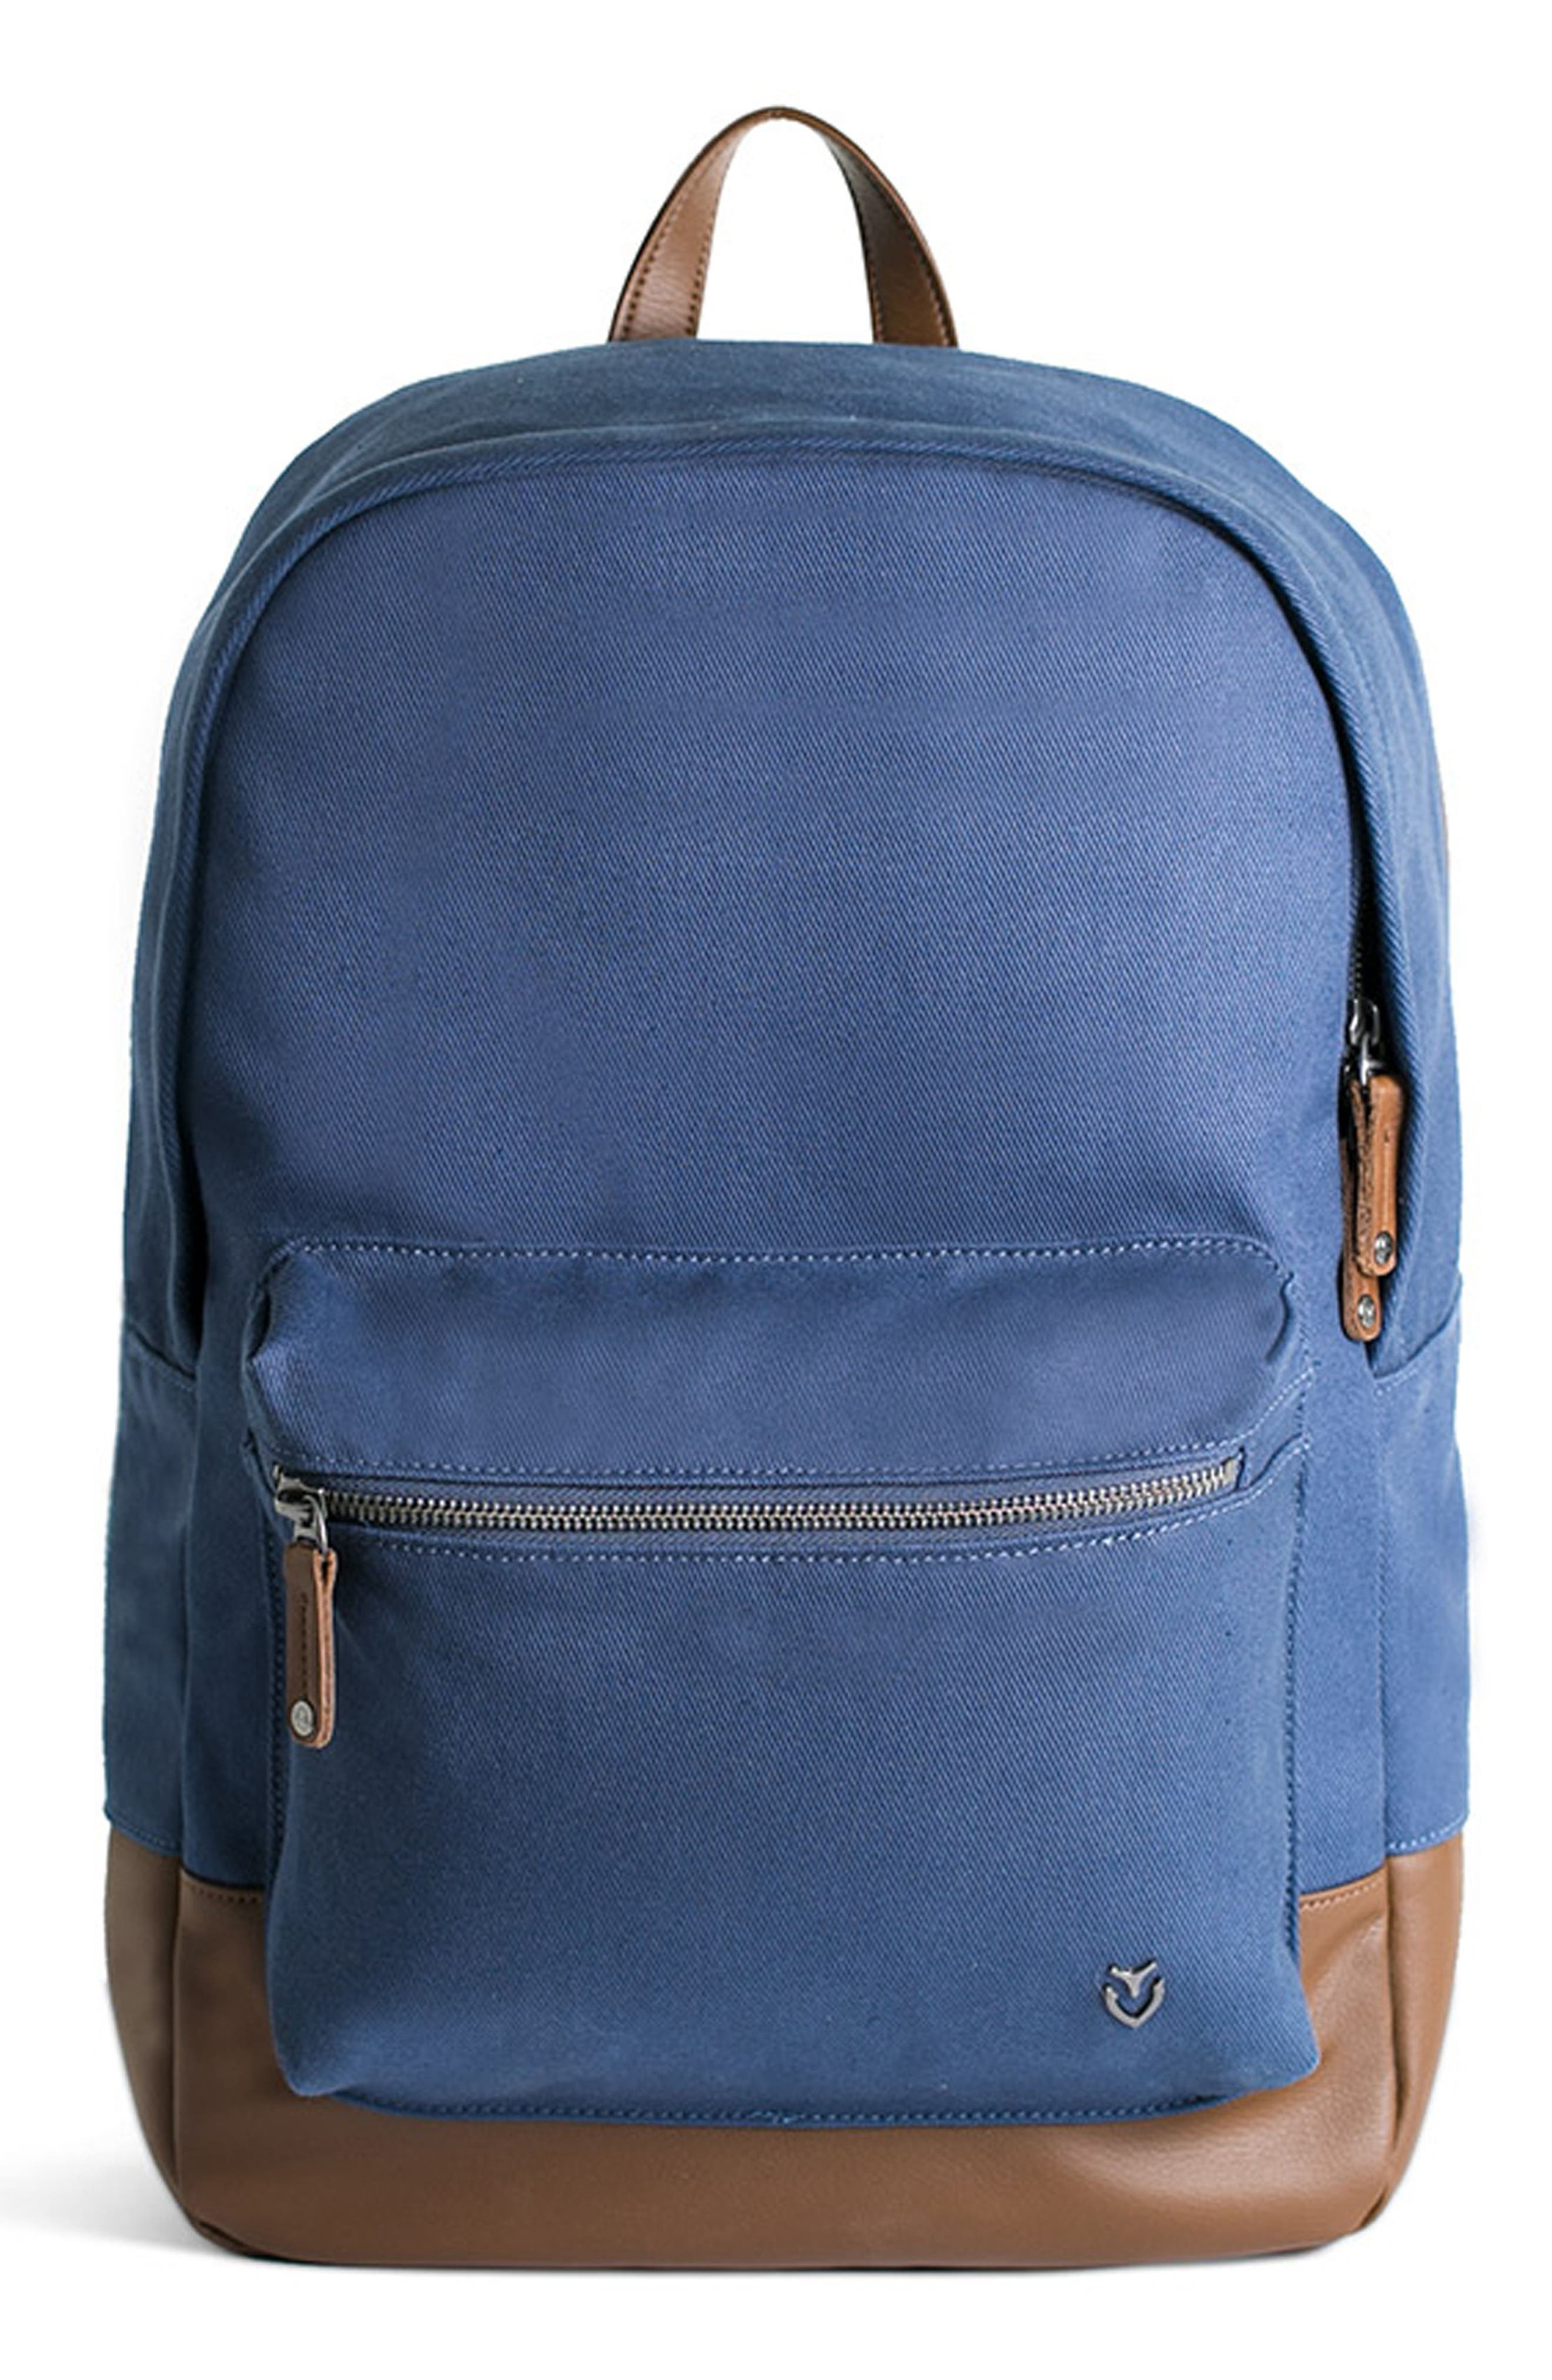 Main Image - Vessel Refined Backpack